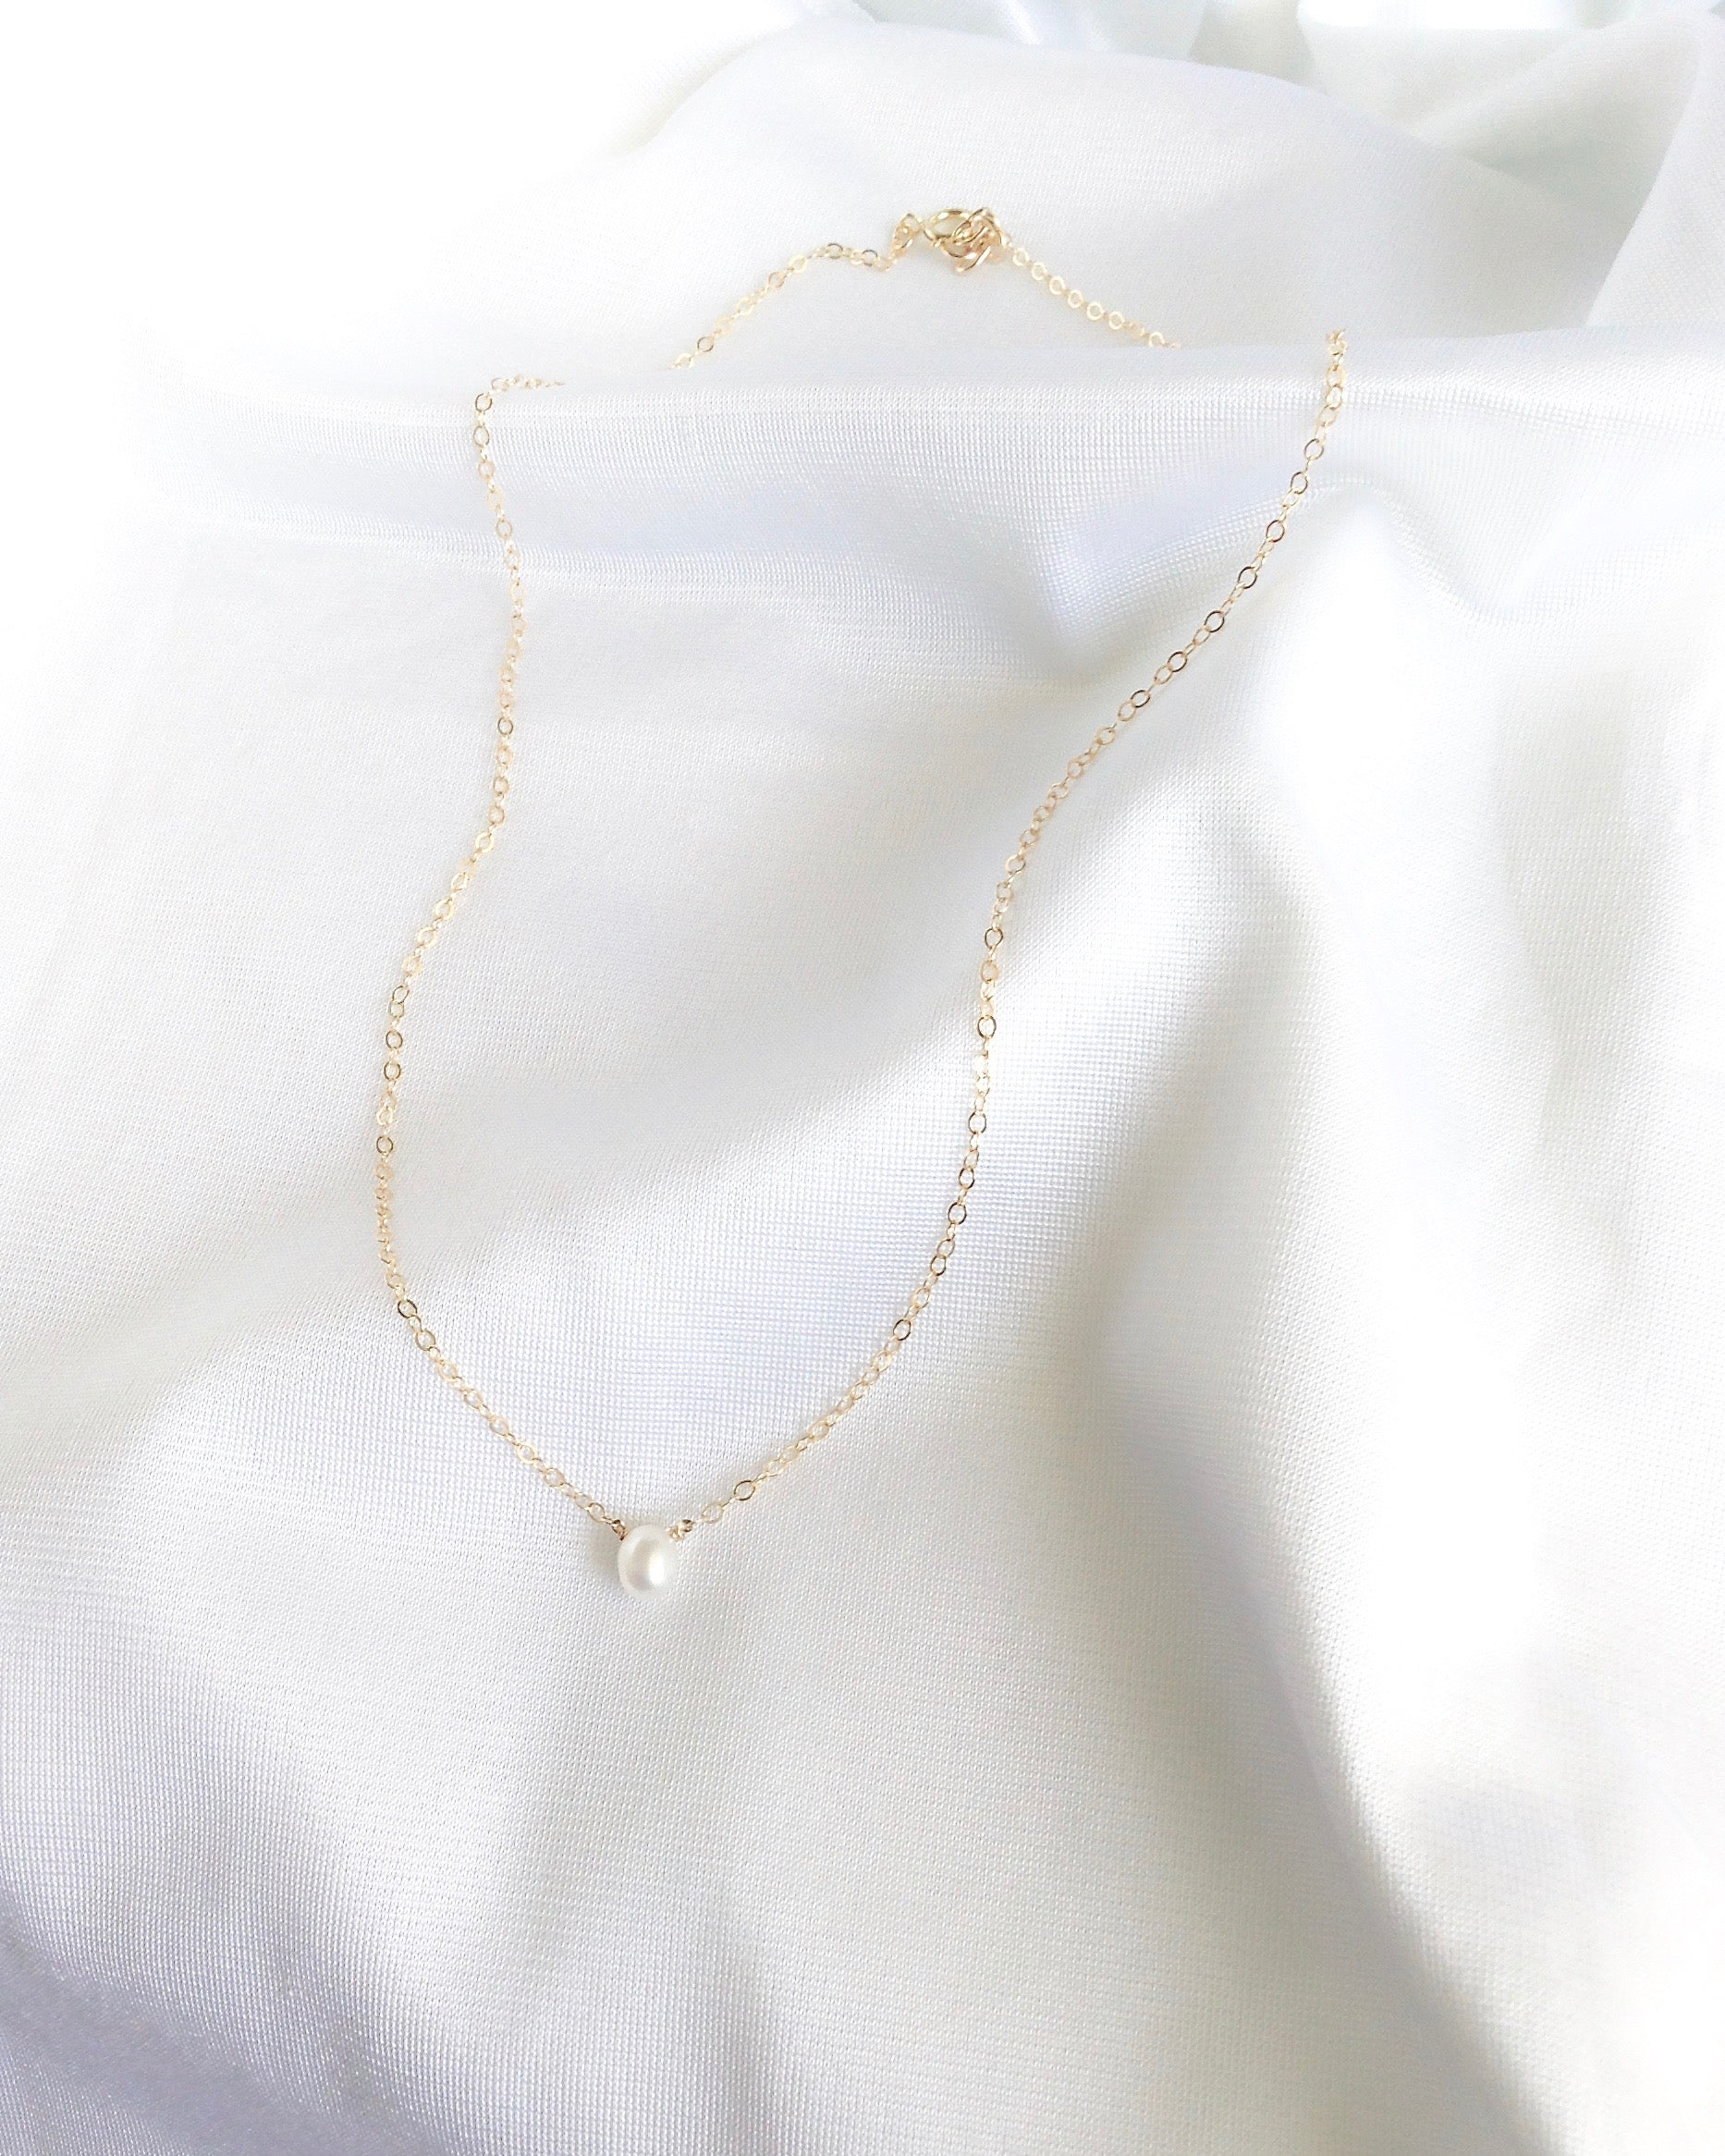 Dainty Pearl Necklace in Gold Filled or Sterling Silver | Simple Delicate Jewelry | IB Jewelry